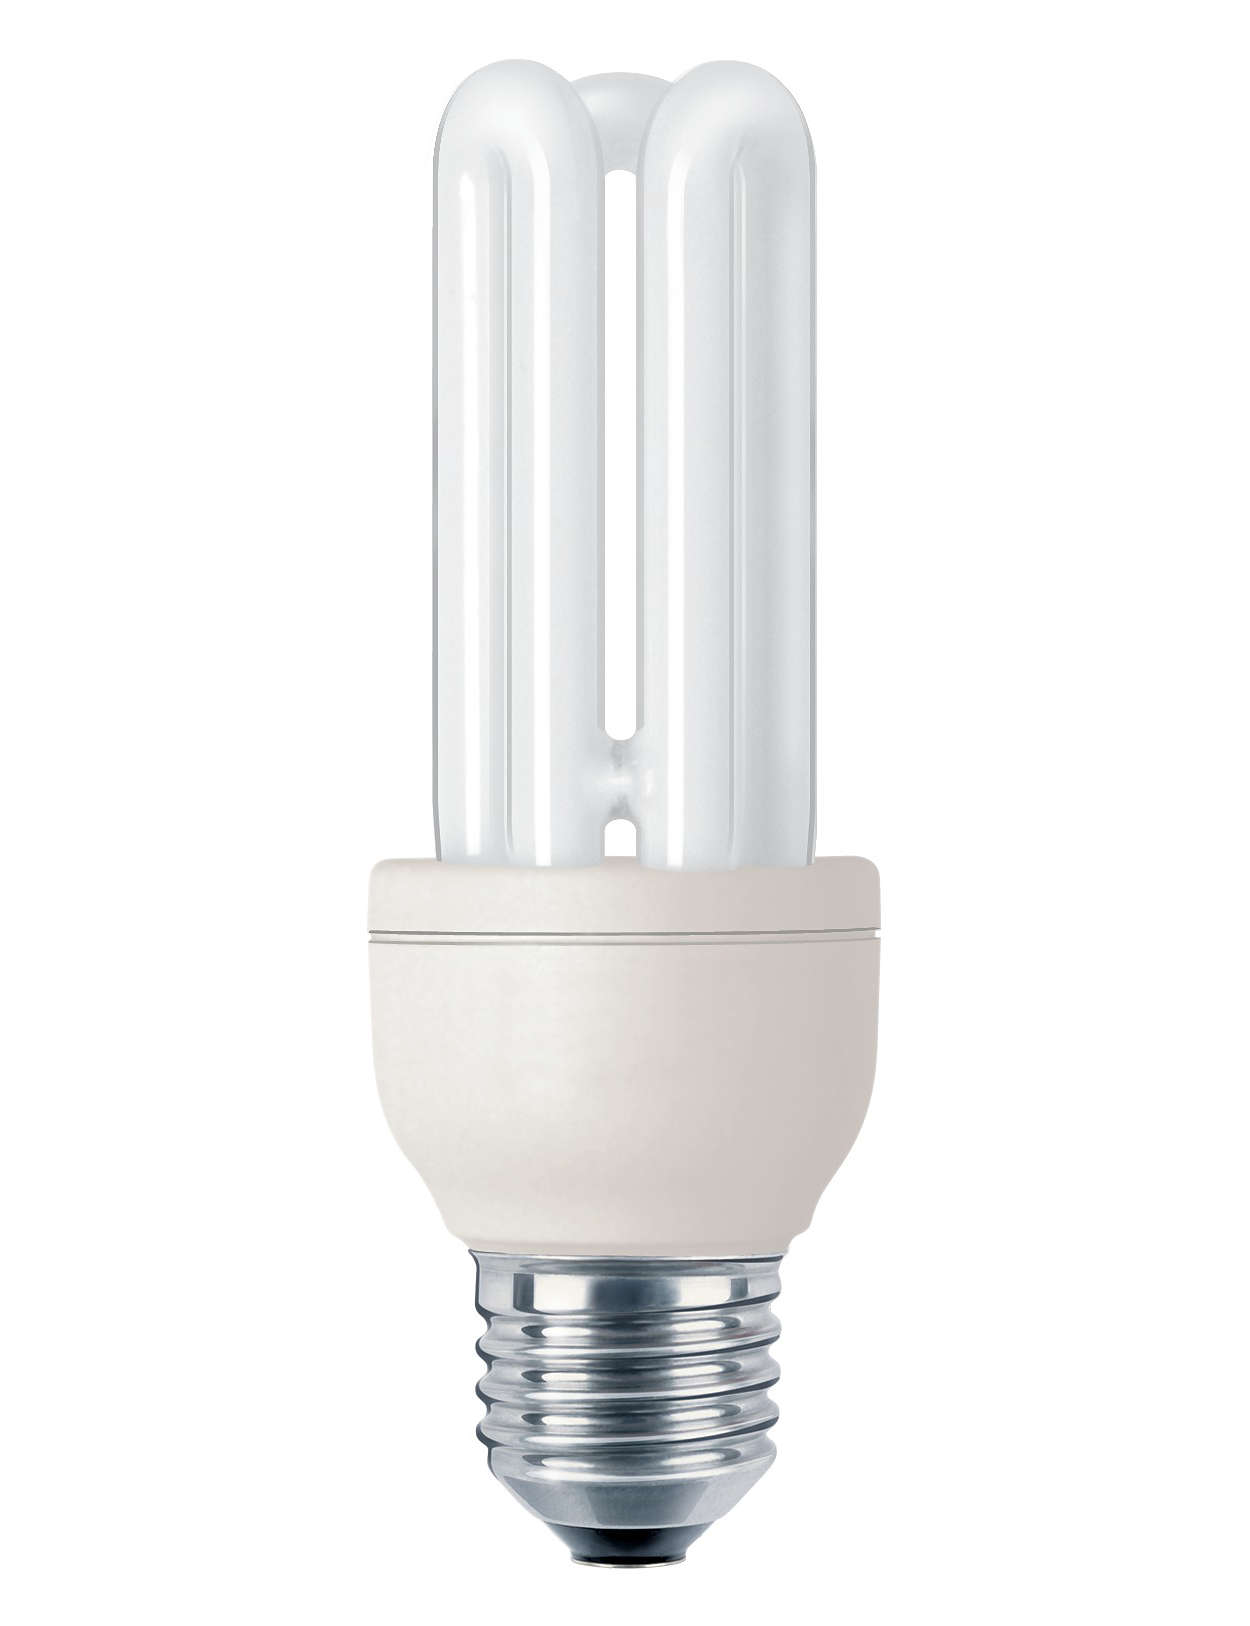 Genie Stick Energy Saving Bulb 872790085392601 Philips